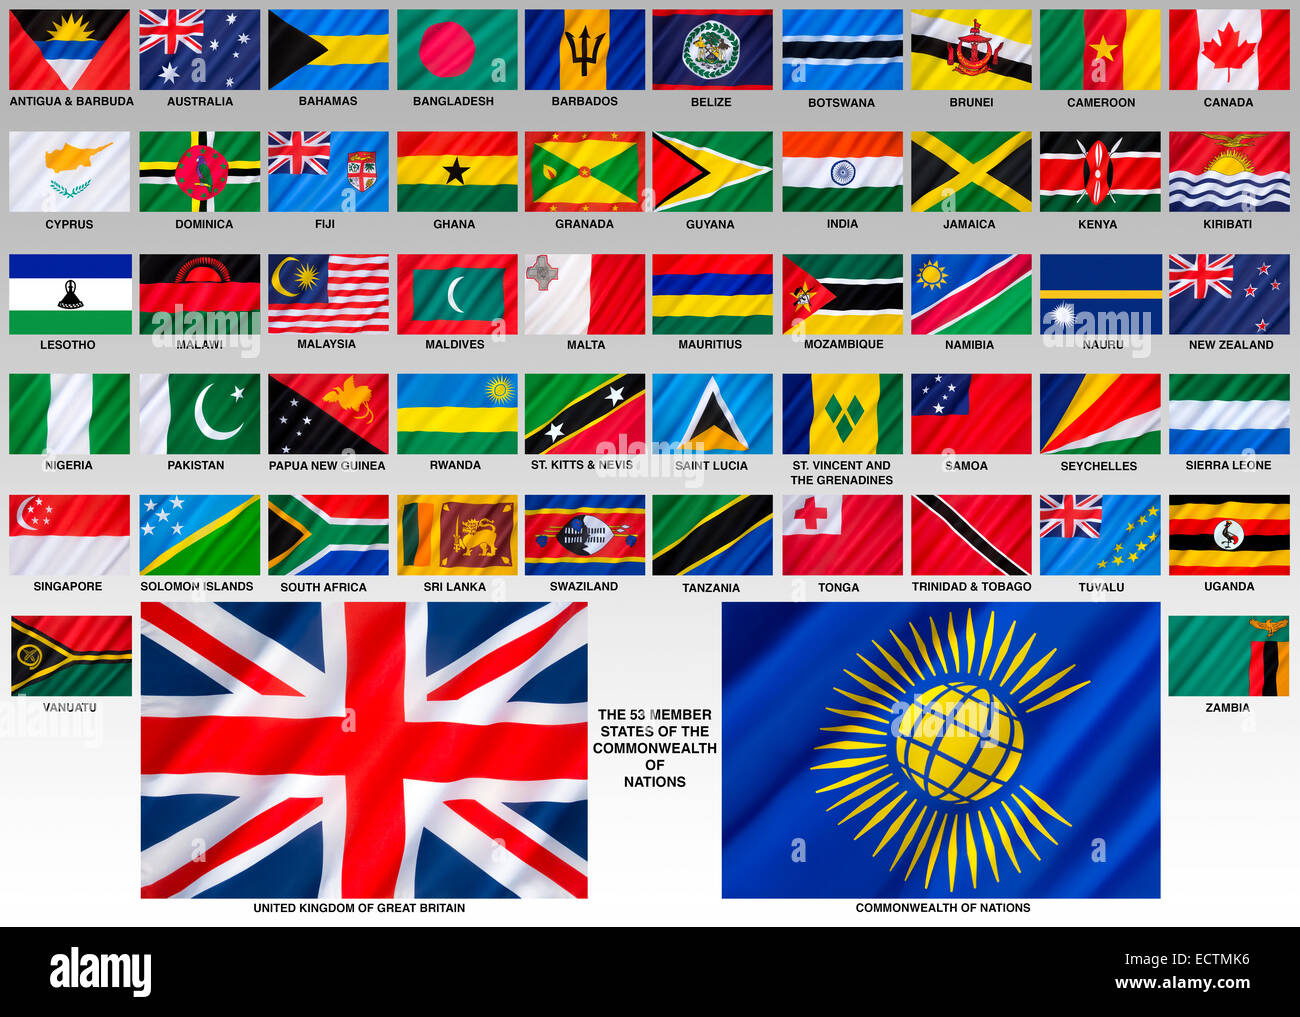 Flags of the Commonwealth of Nations (formerly the British Commonwealth) - Stock Image